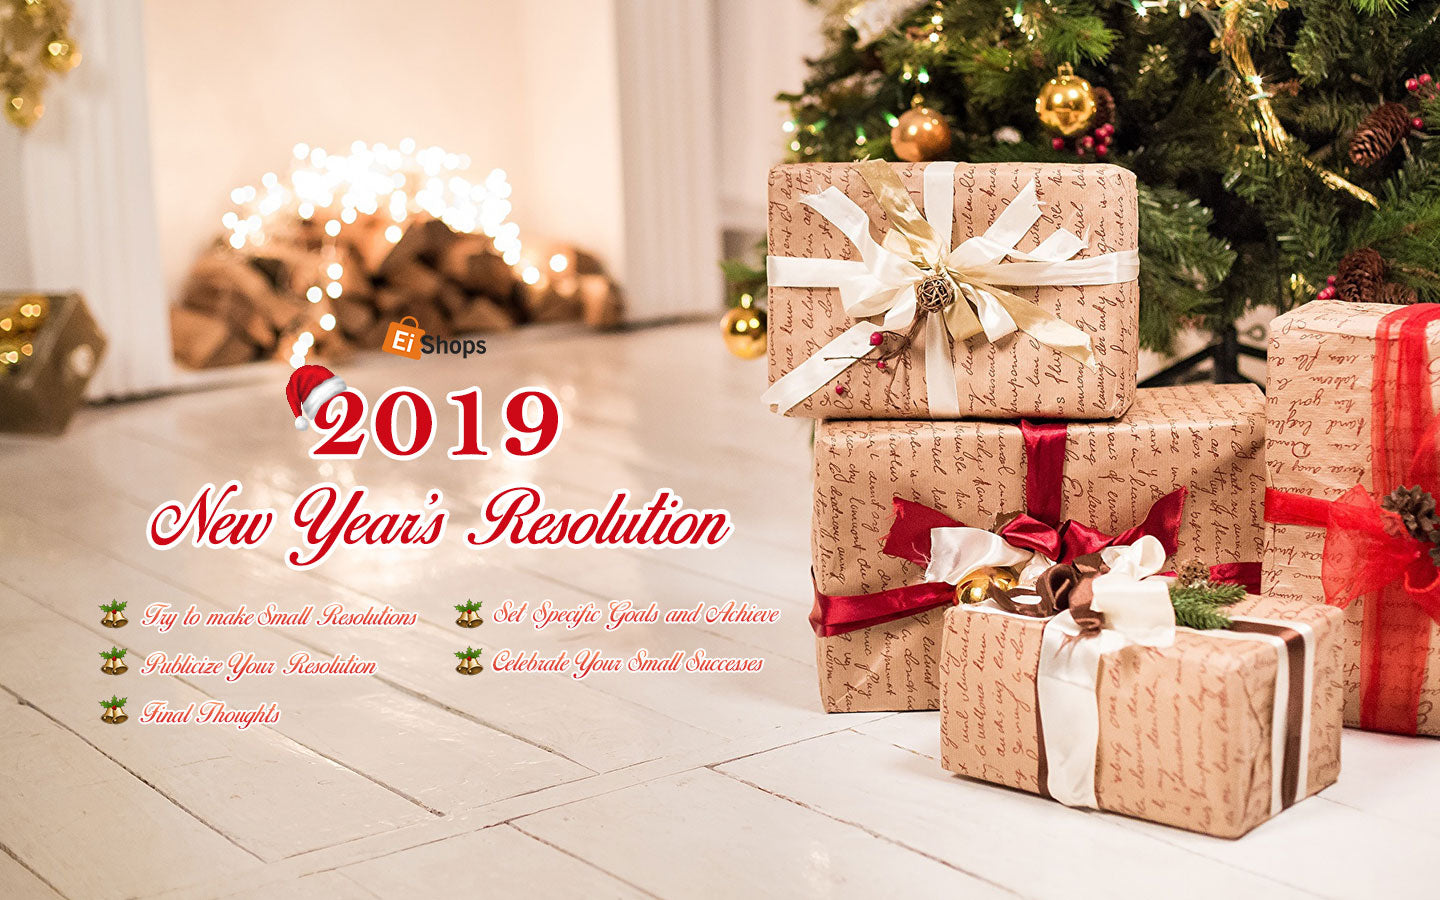 New Year 2019 and 2019 New Year's Resolution